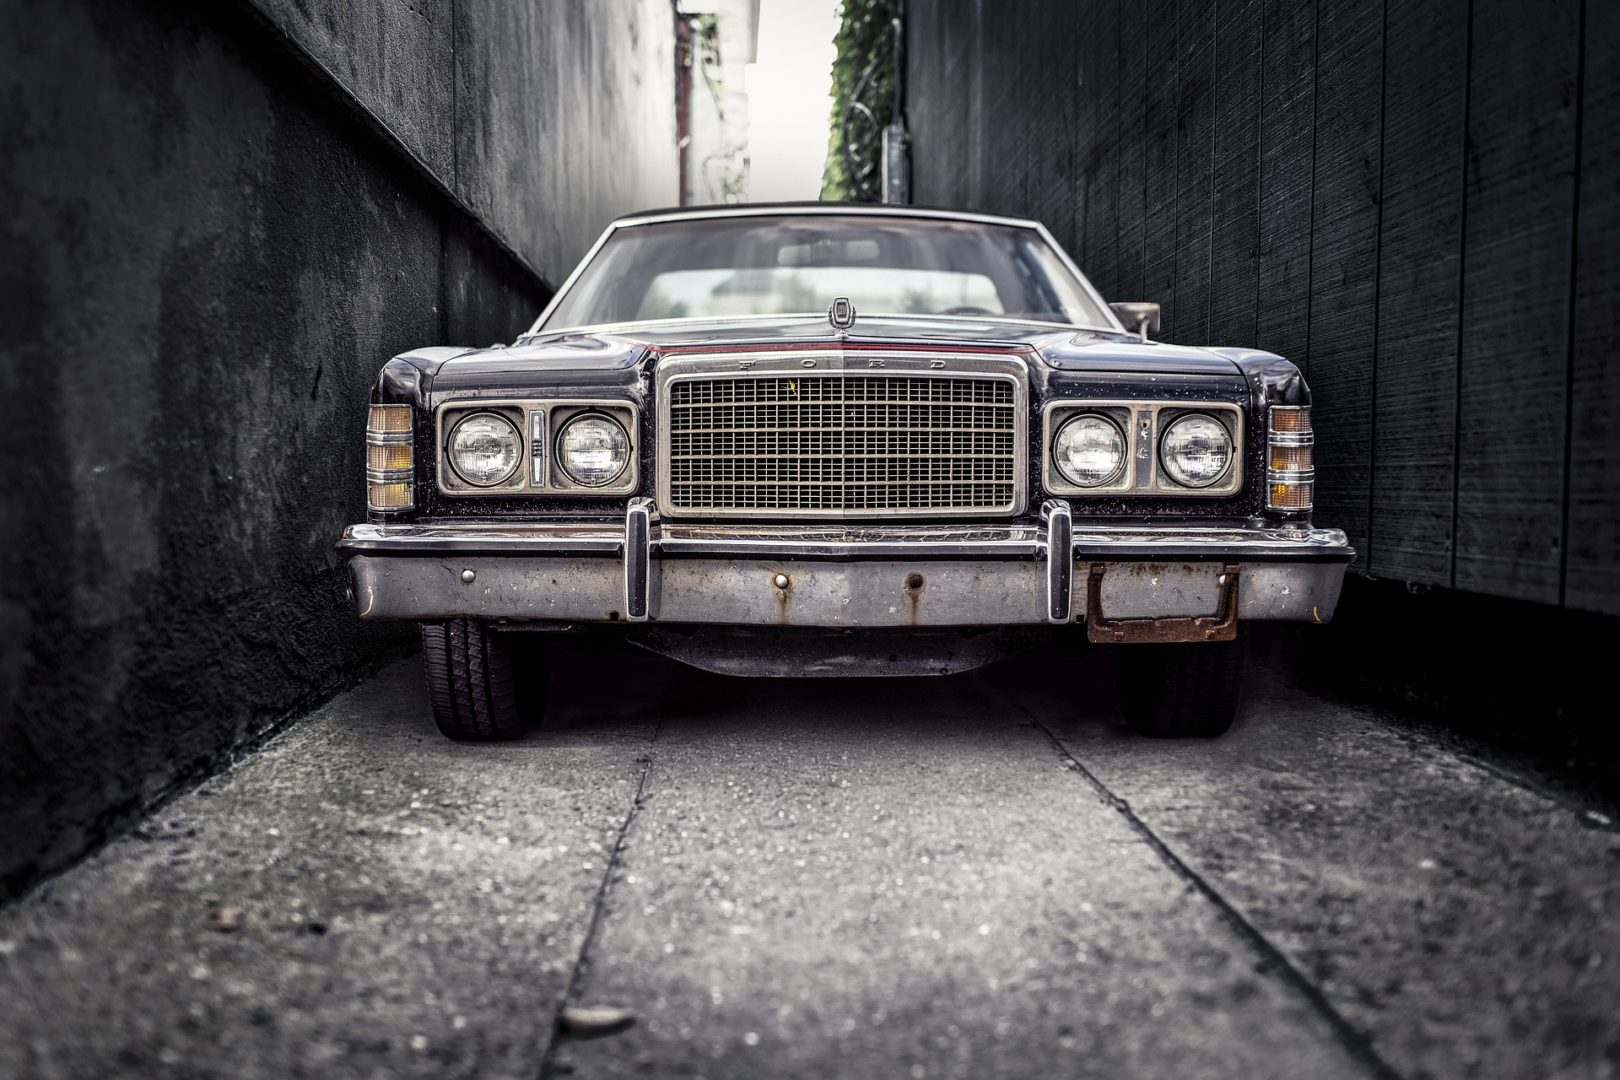 Vintage Cars You Can Find on OLX